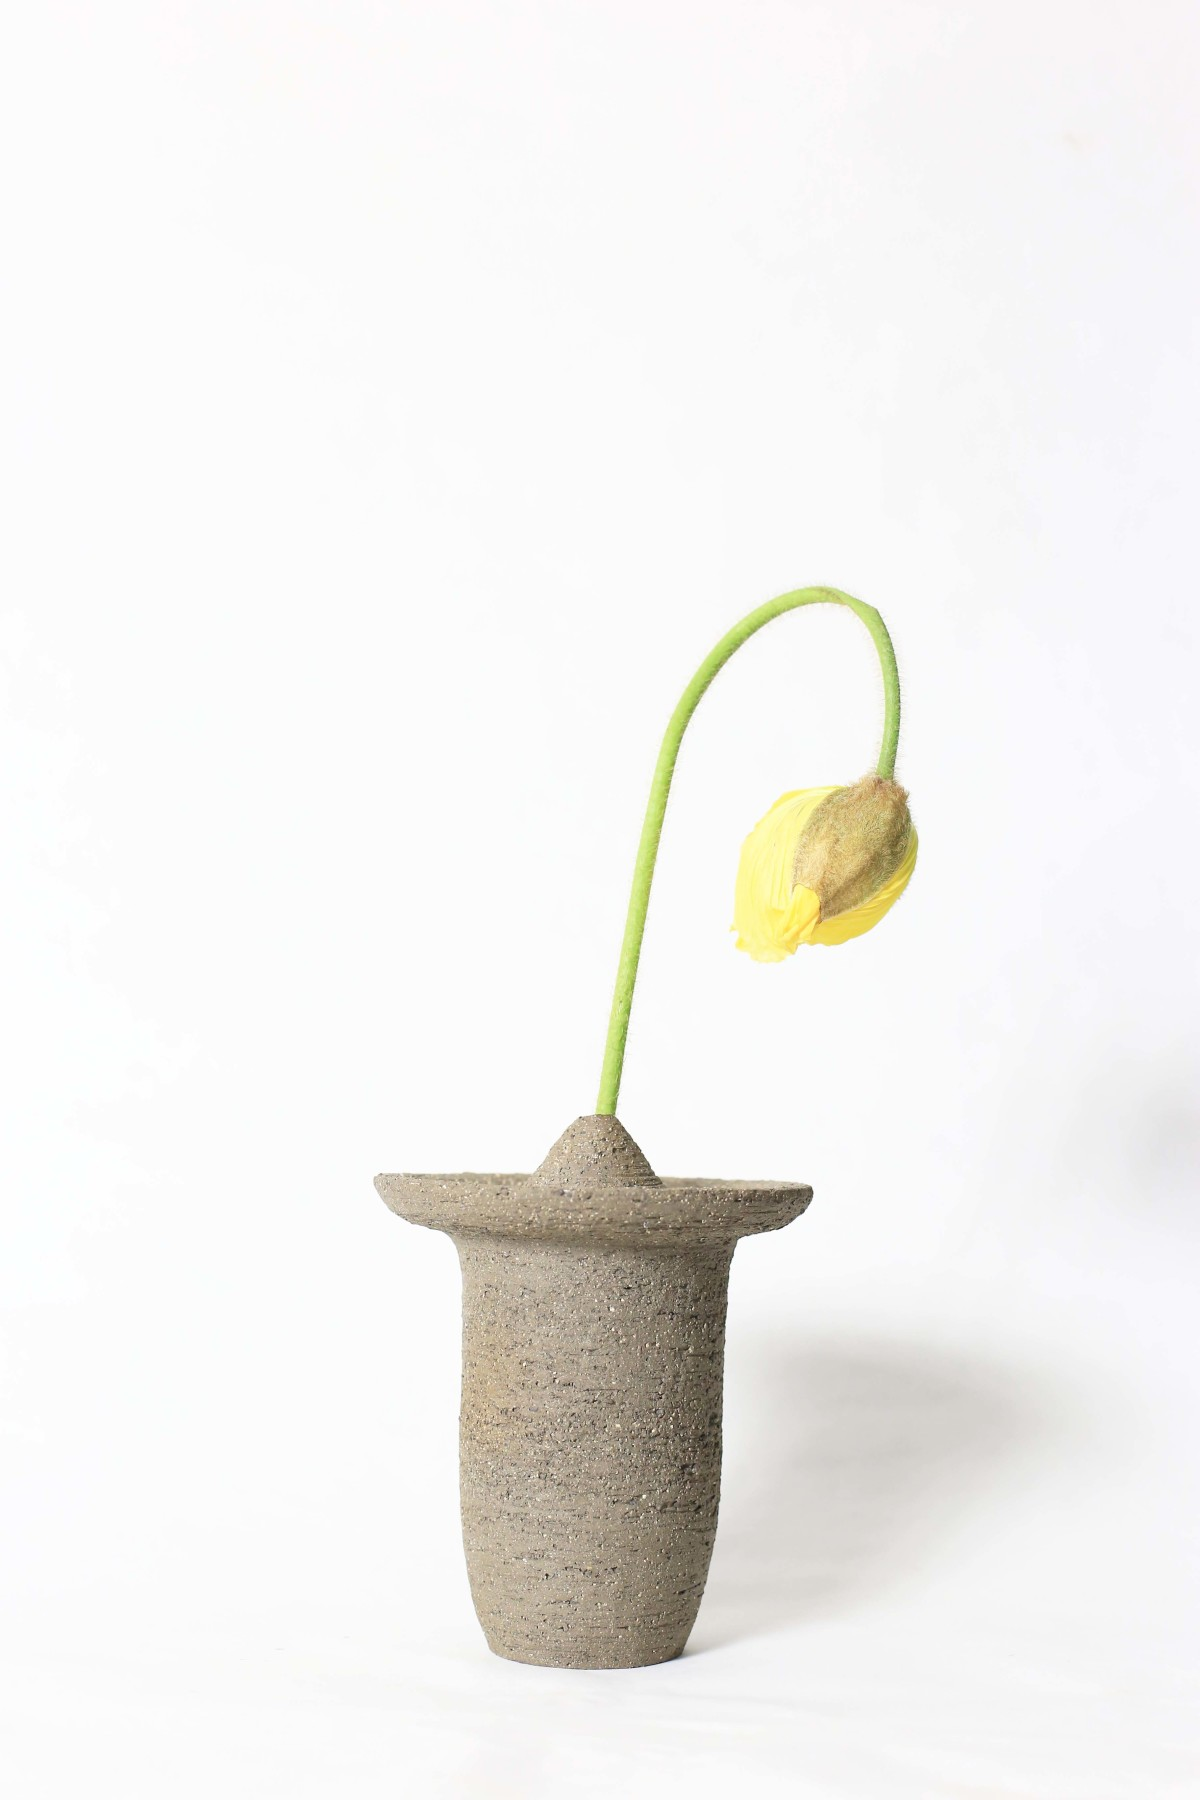 Ufo shaped gray ceramic vase with a yellow flower on a white background